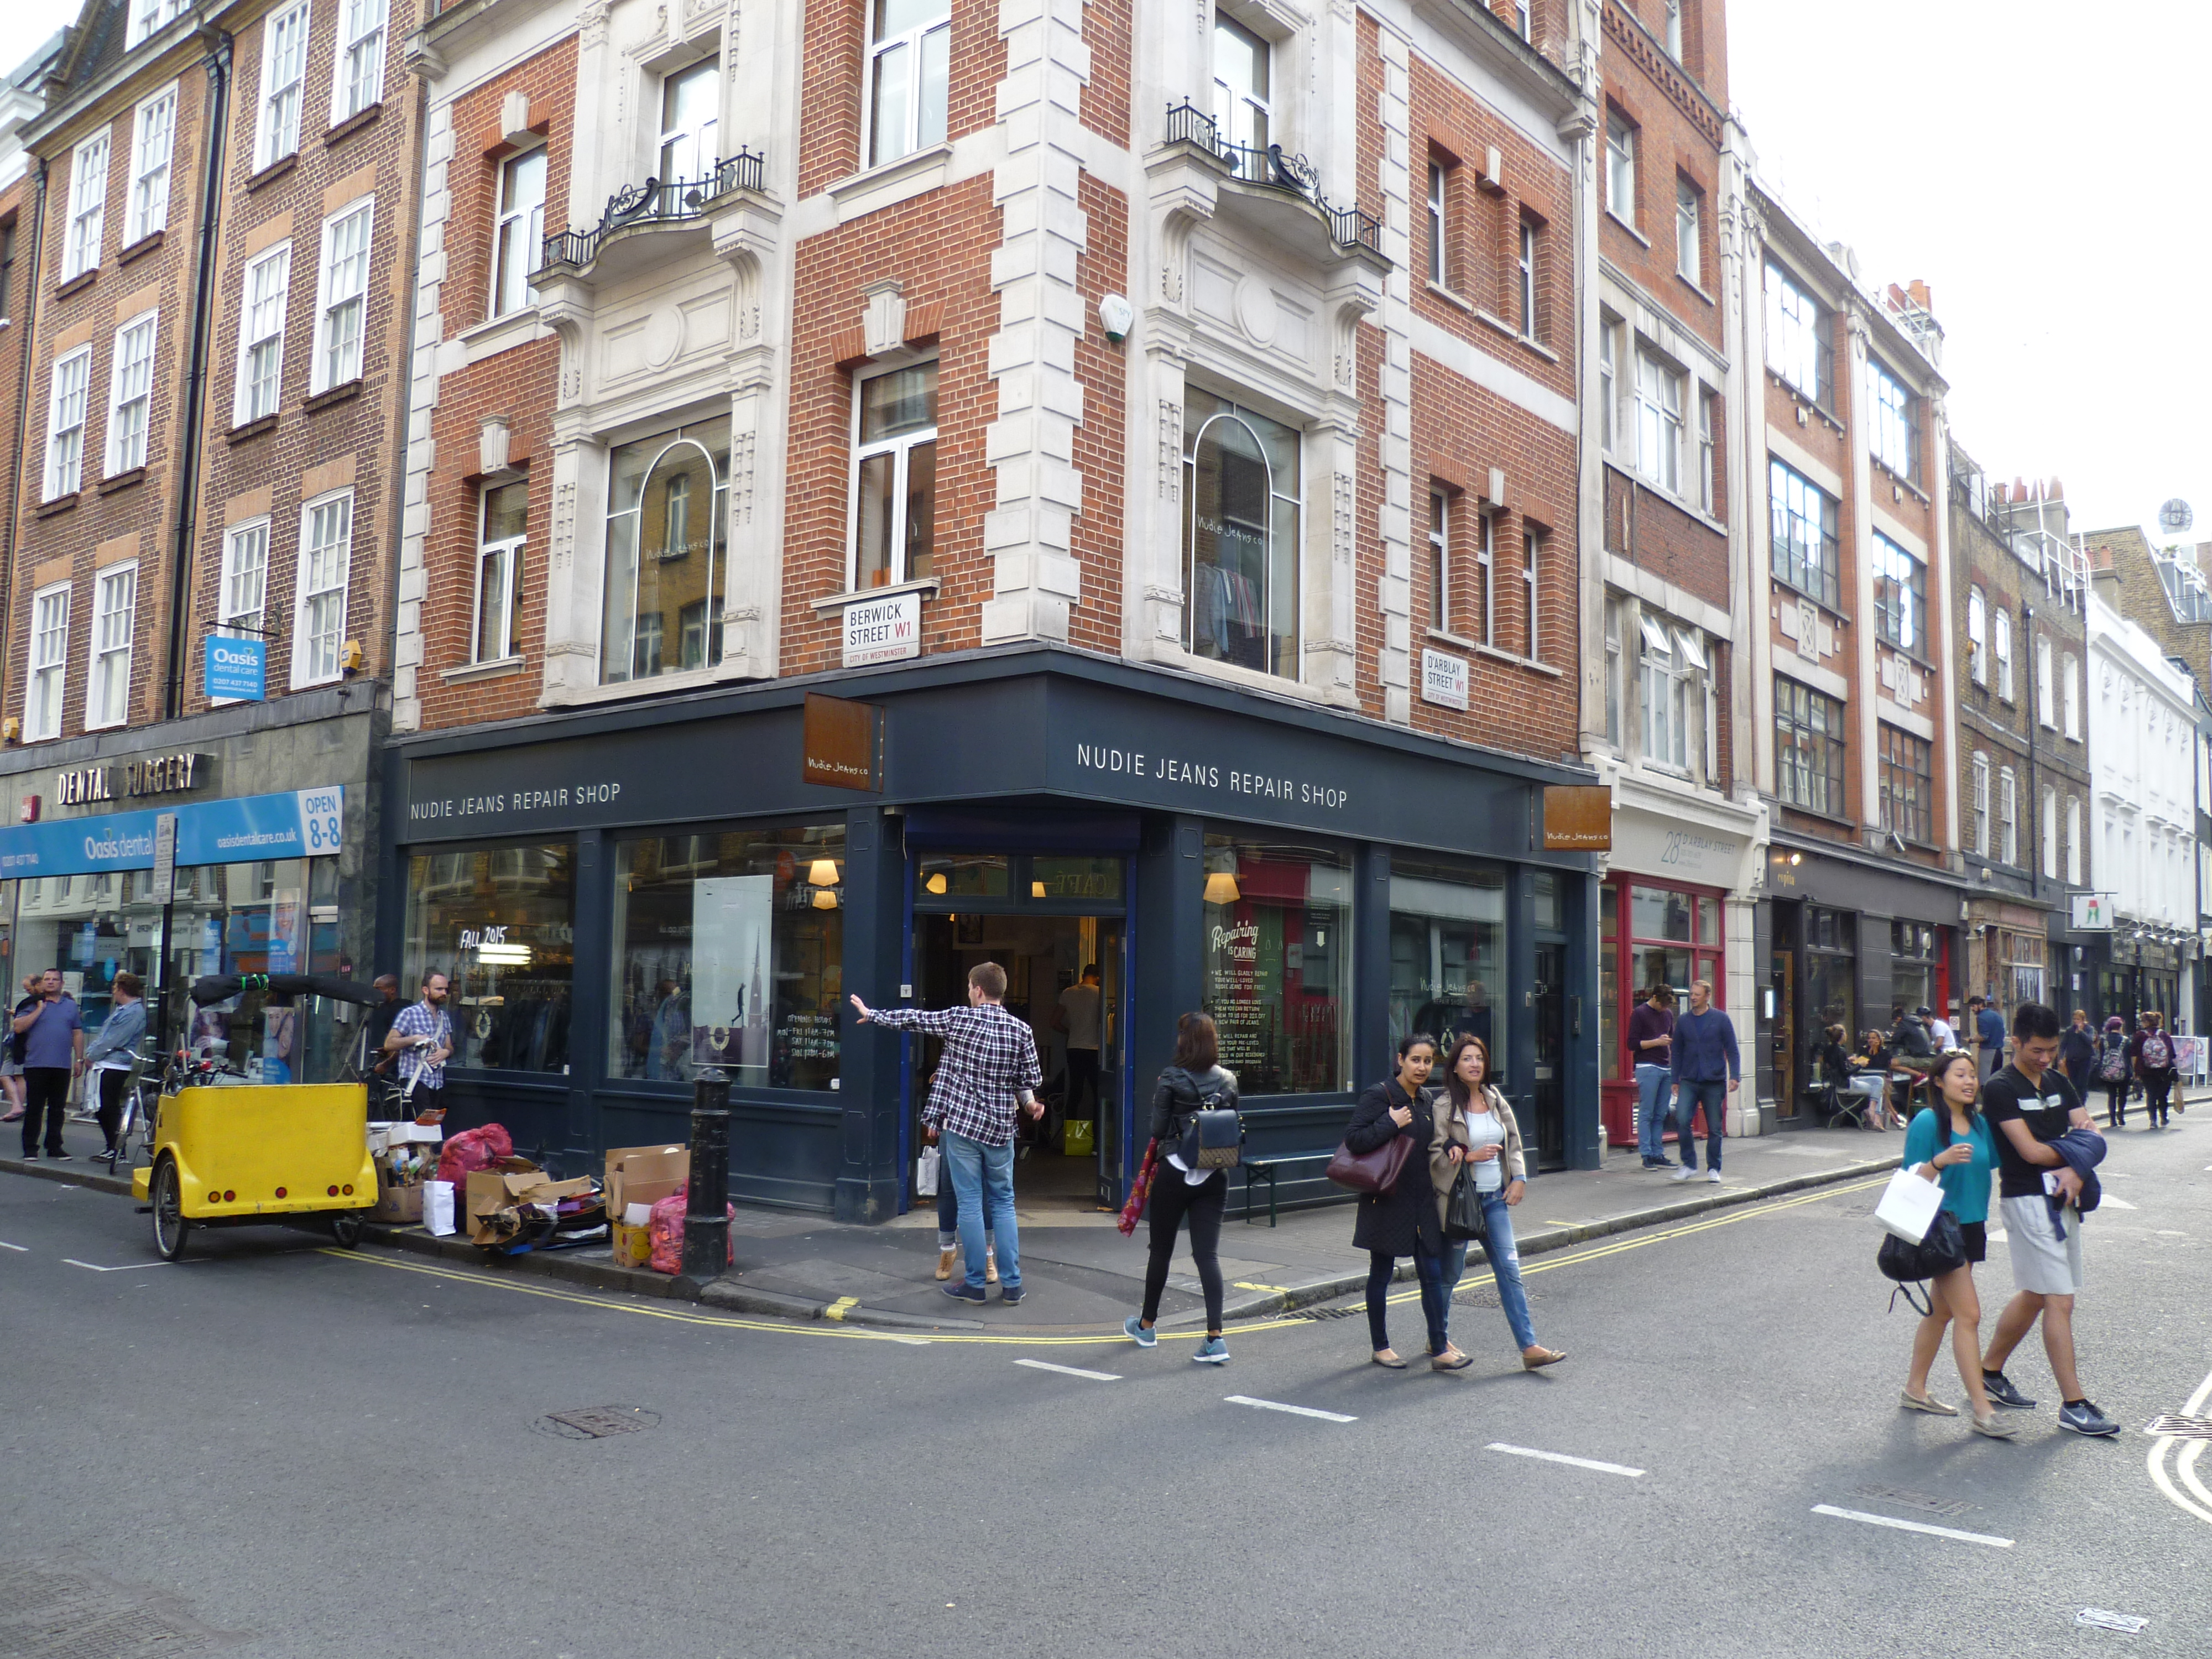 berwick dating One of london's oldest markets – dating back to 1778 – berwick street market is now a bustling foodie destination full of concept traders.